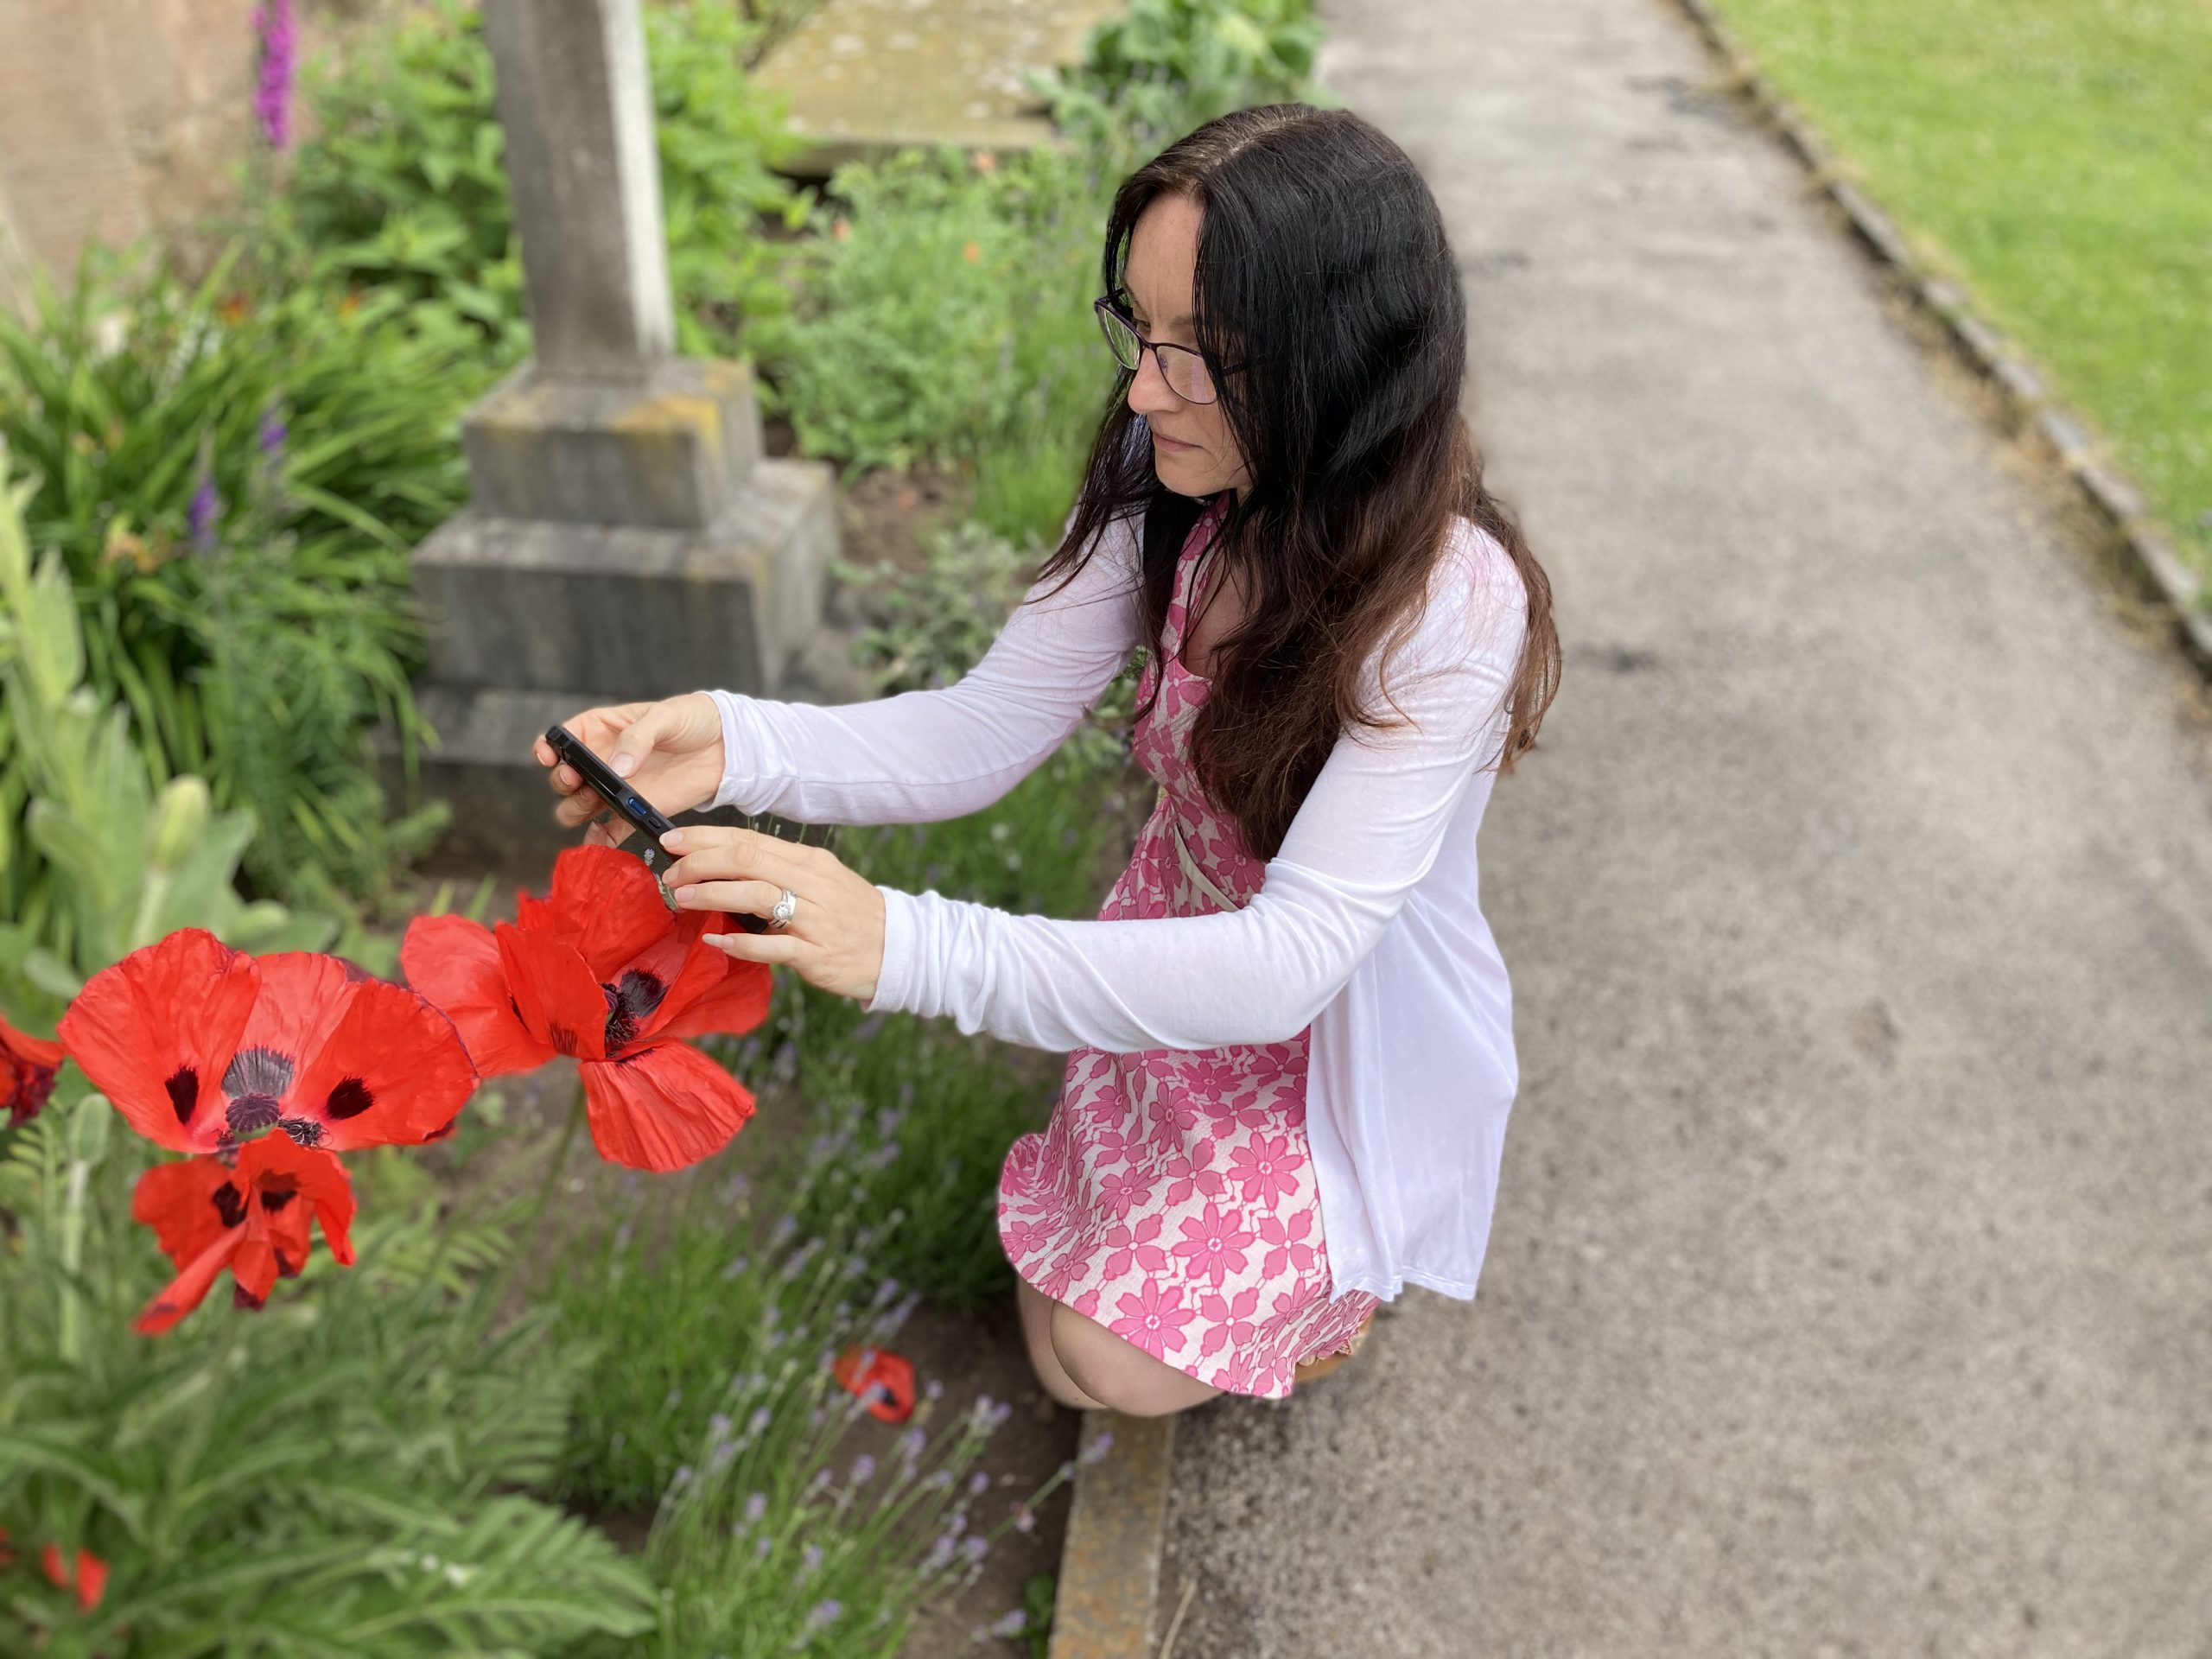 Ruth bending down taking a photo of a flower.